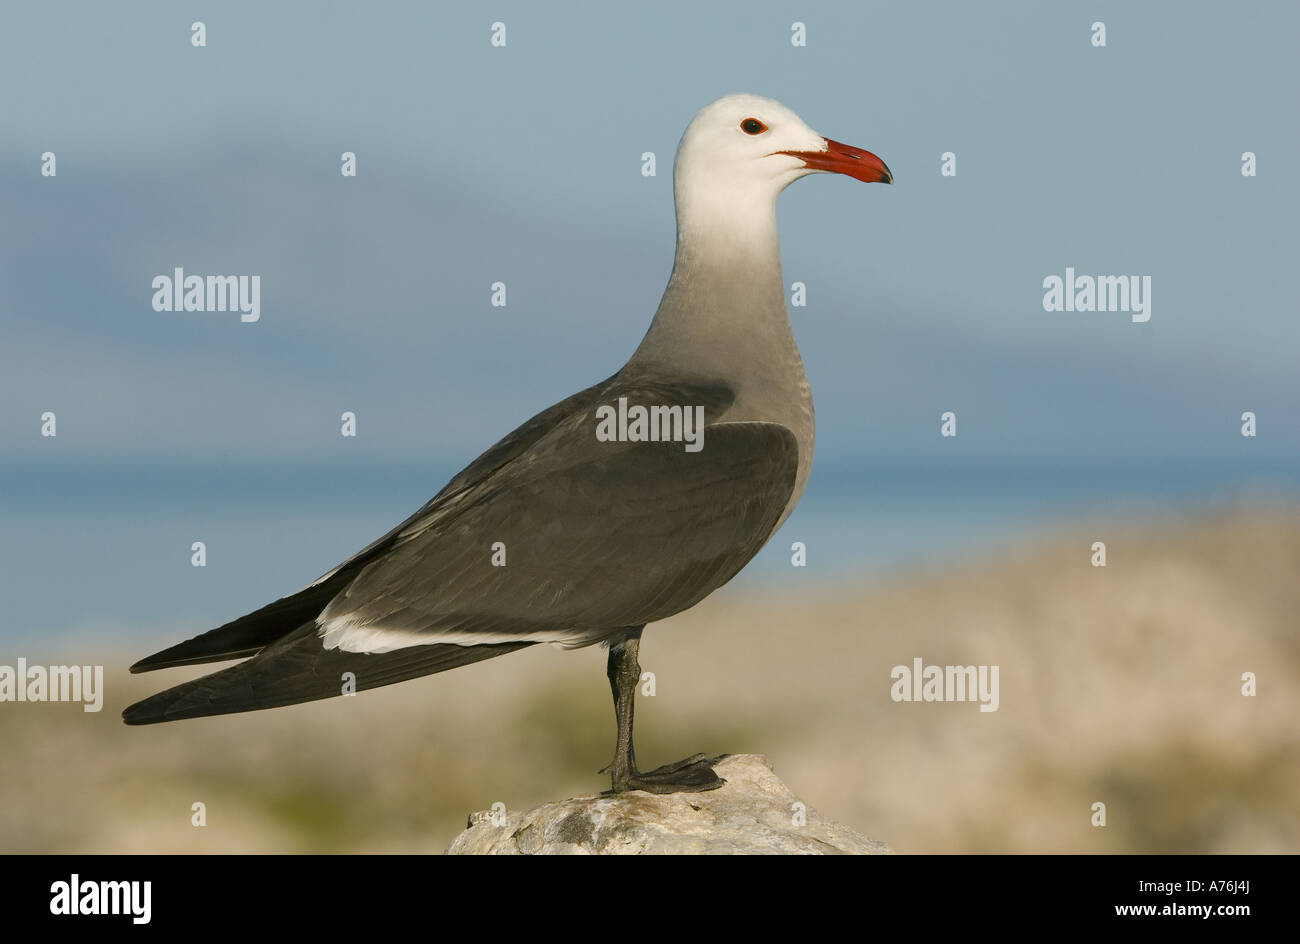 Heerman's Gull (Larus heermanni) Isla Rasa breeding colony,  SEA OF CORTES, Baja California, MEXICO - Stock Image